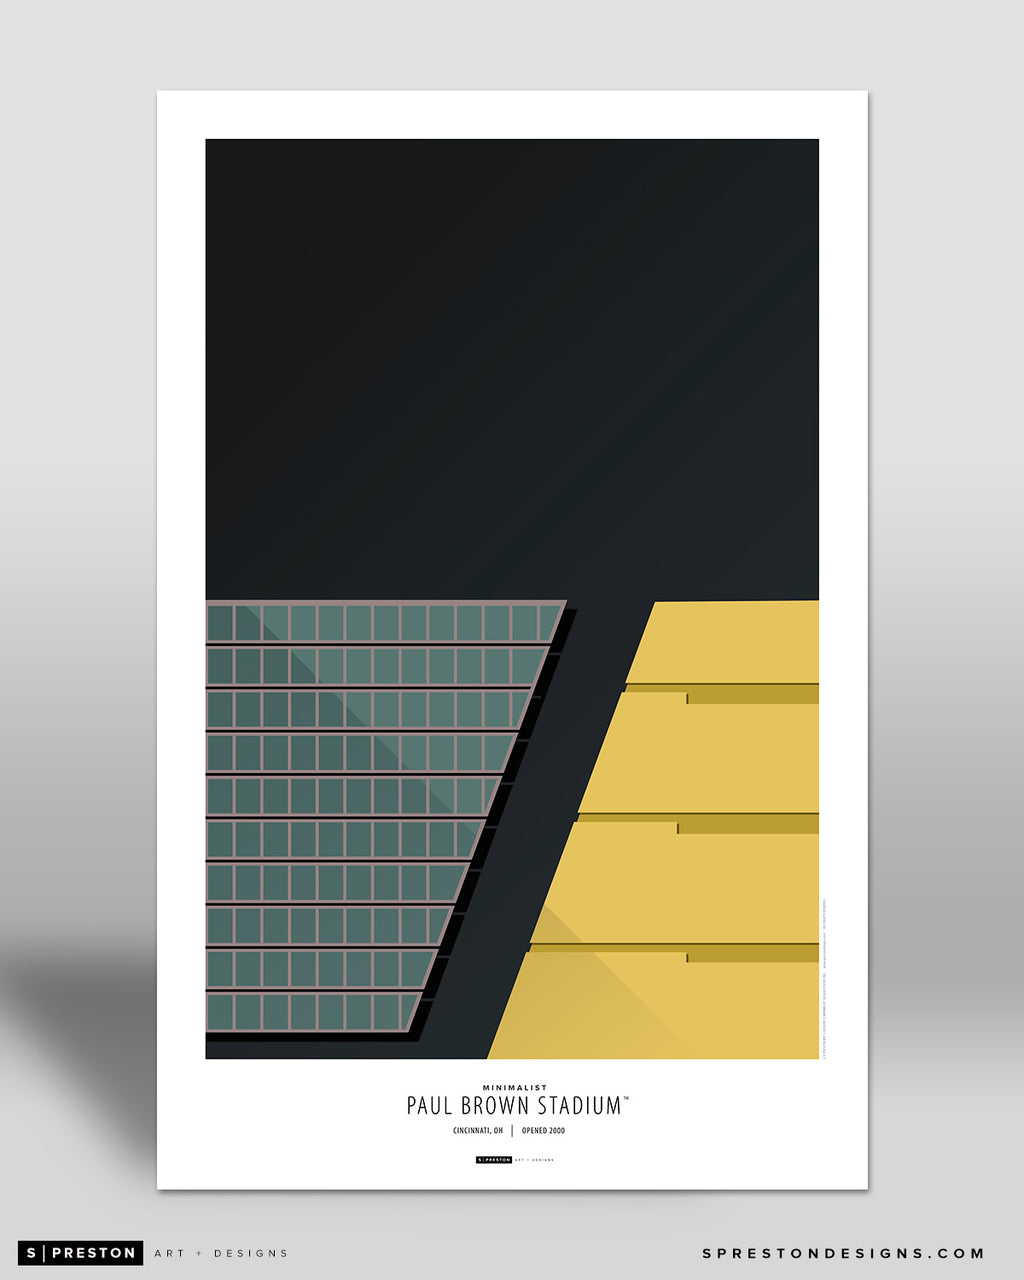 Minimalist Paul Brown Stadium Art Poster Art Poster - Cincinnati Bengals - S. Preston Art + Designs